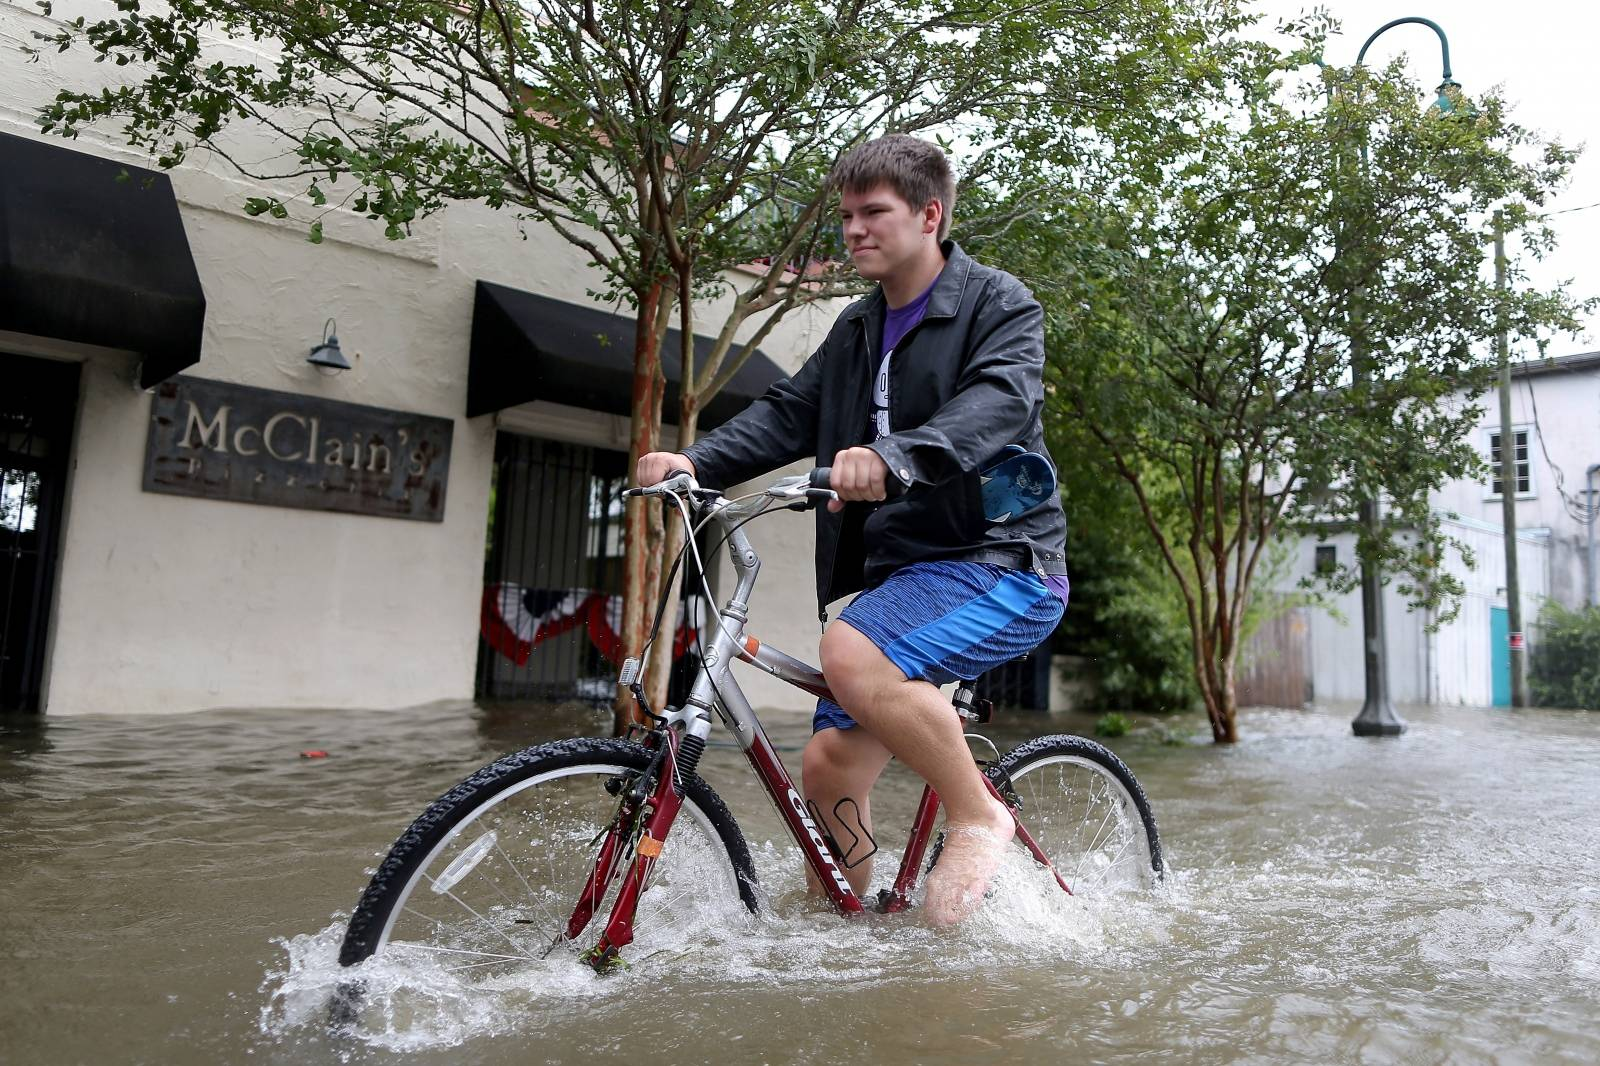 A resident bikes down a flooded street after Hurricane Barry in Mandeville